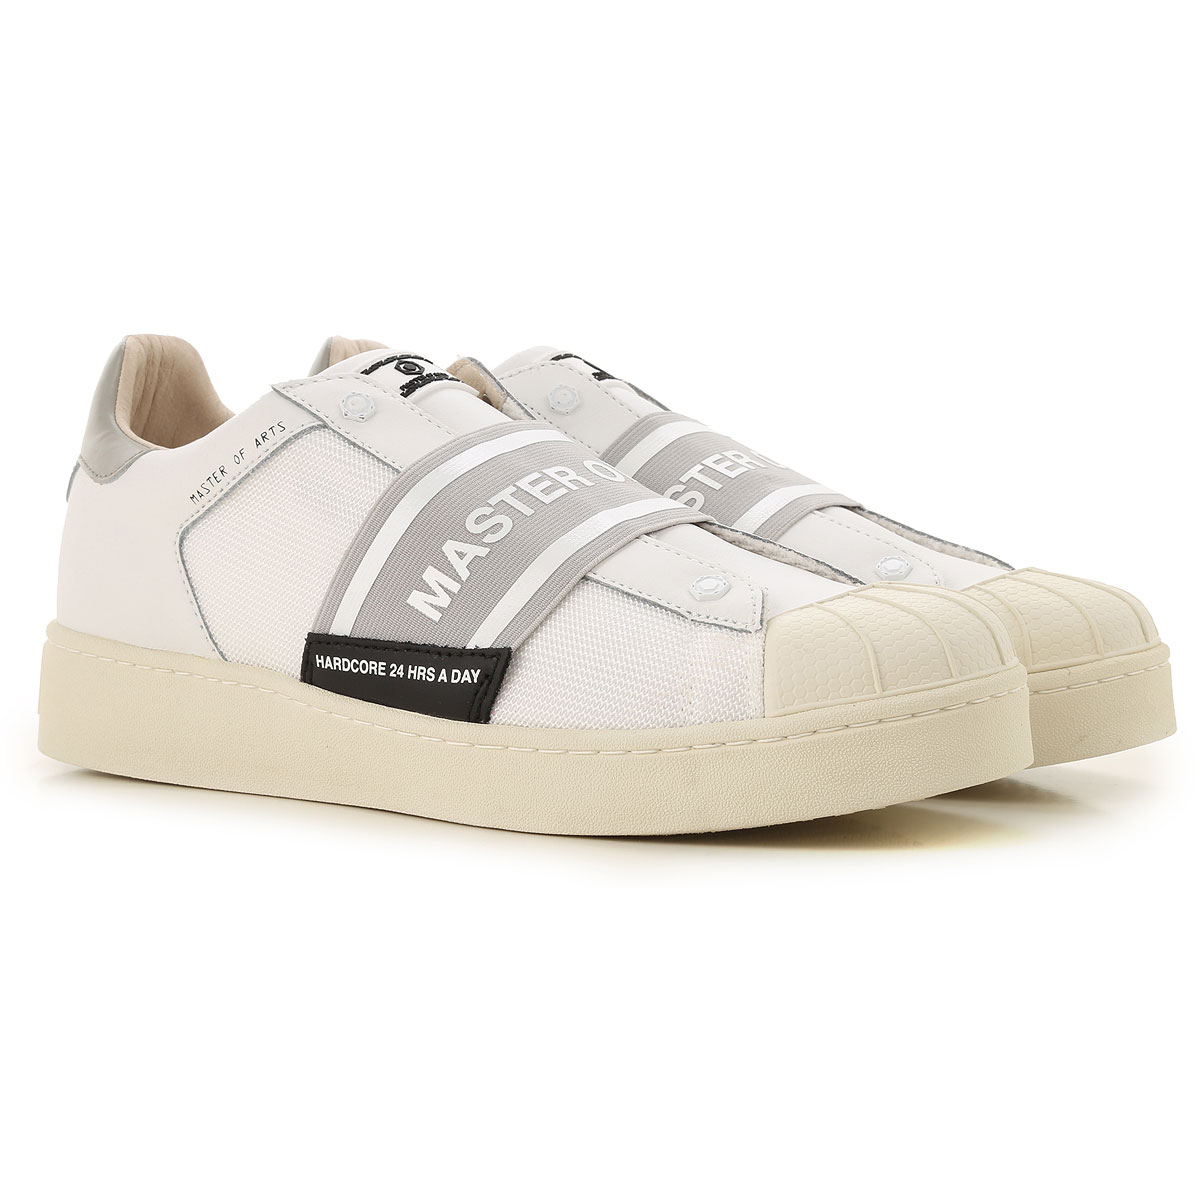 Moa Master of Arts Sneakers for Men On Sale in Outlet, White, Leather, 2019, 10.5 11.5 7.5